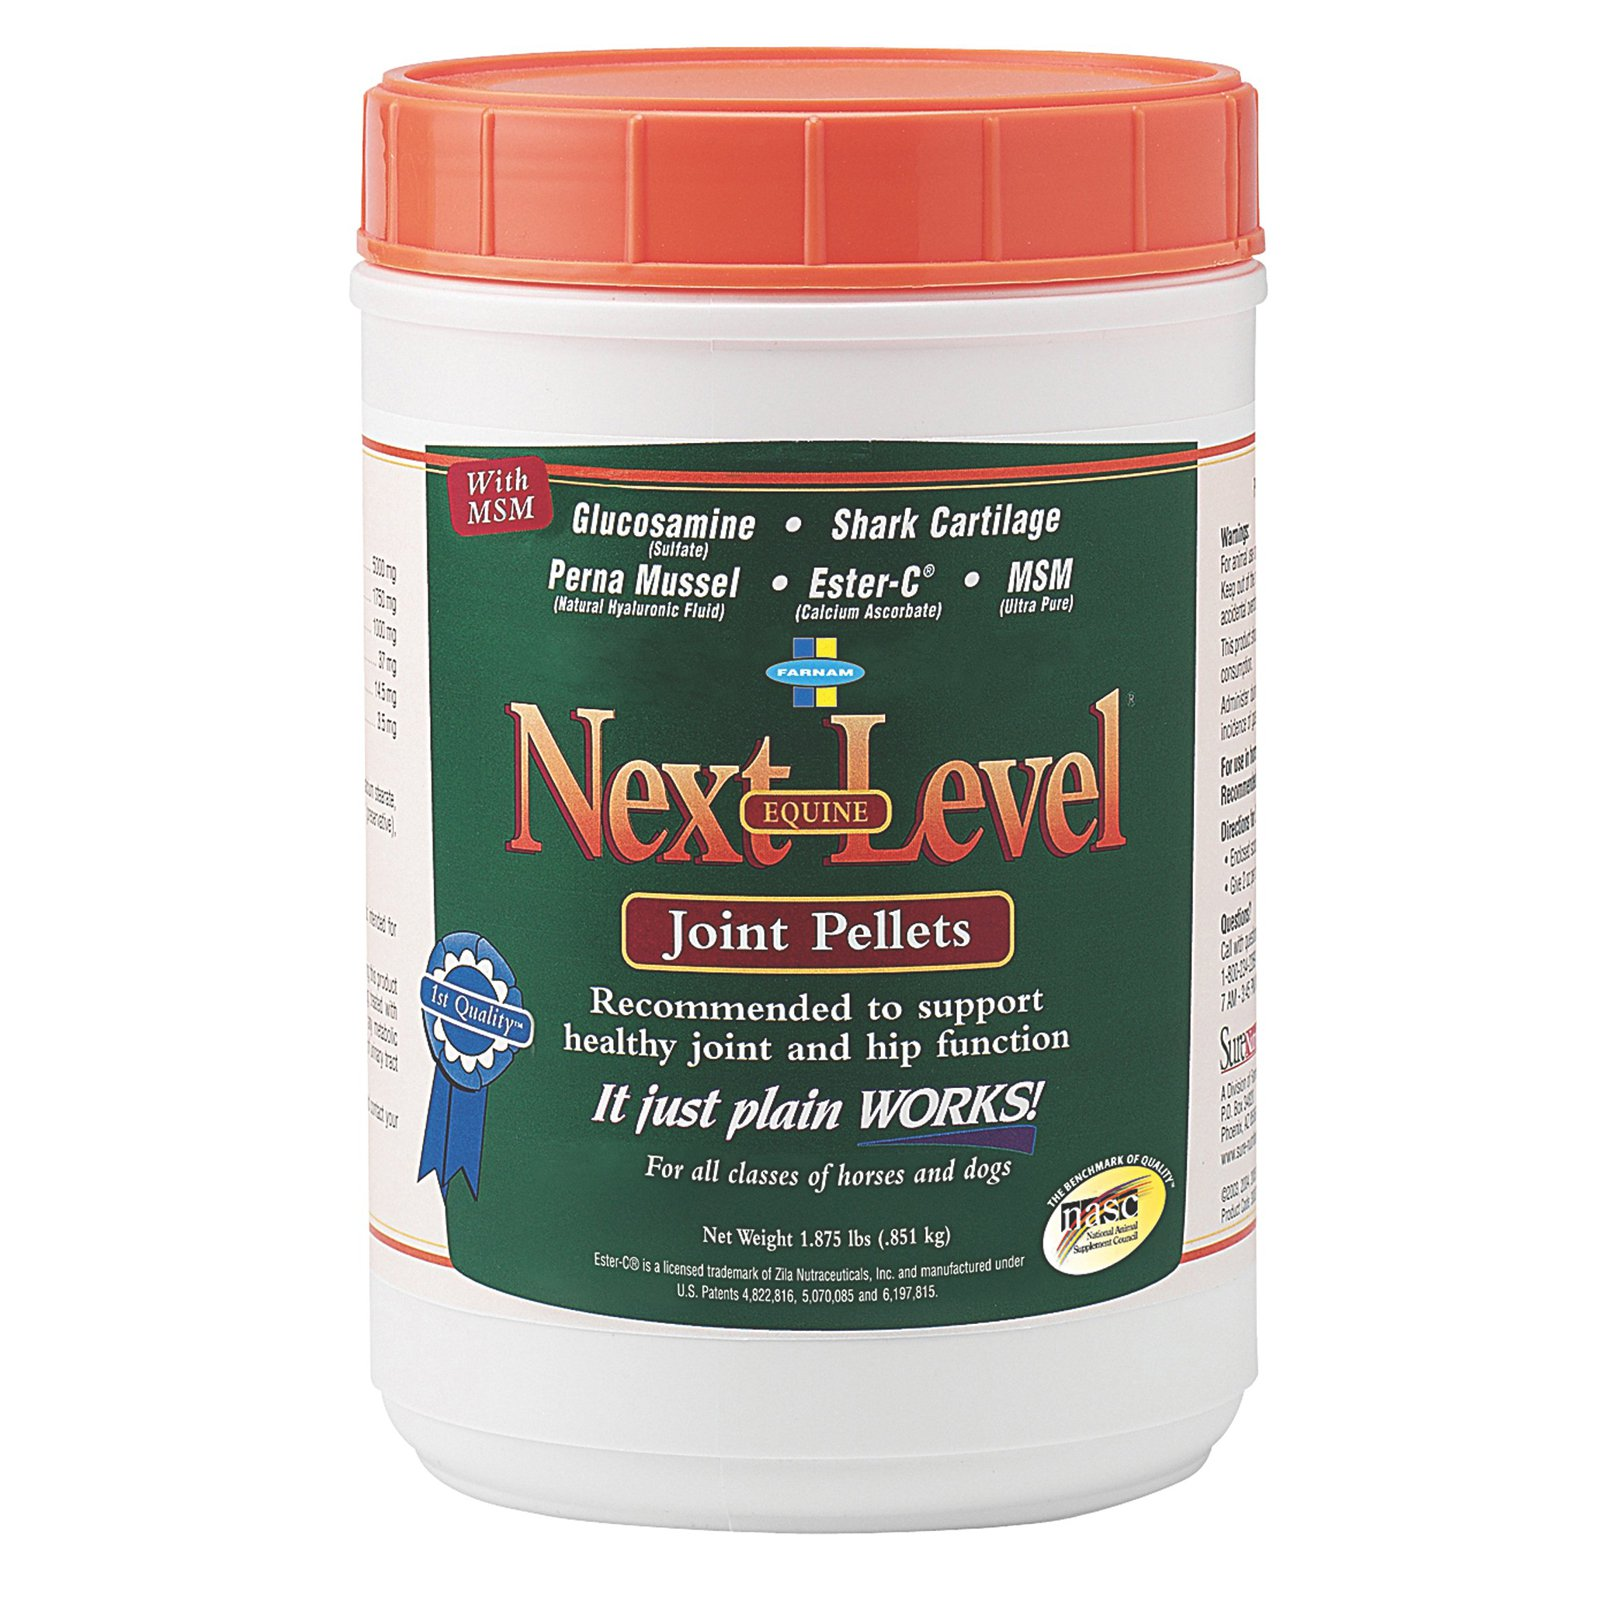 Farnam-Sure Nutrition Next Level Joint Pellets